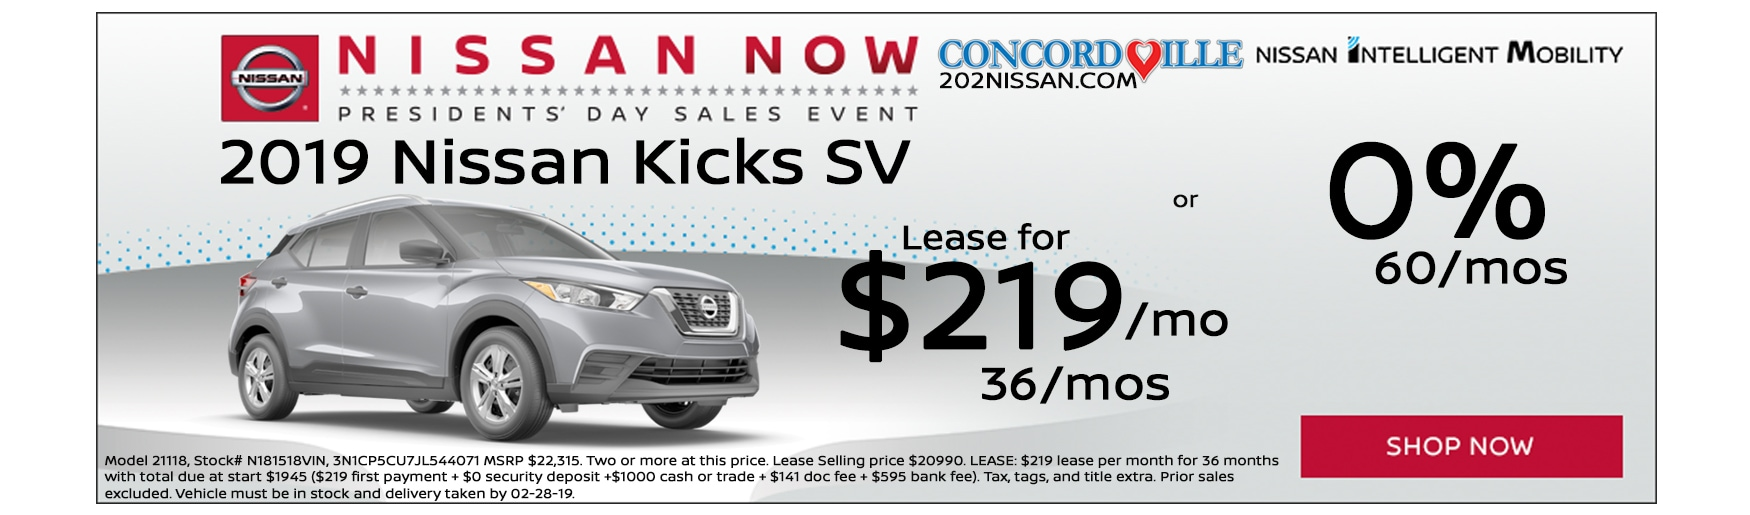 Concordville Nissan New Nissan Dealership In Glen Mills Pa 19342